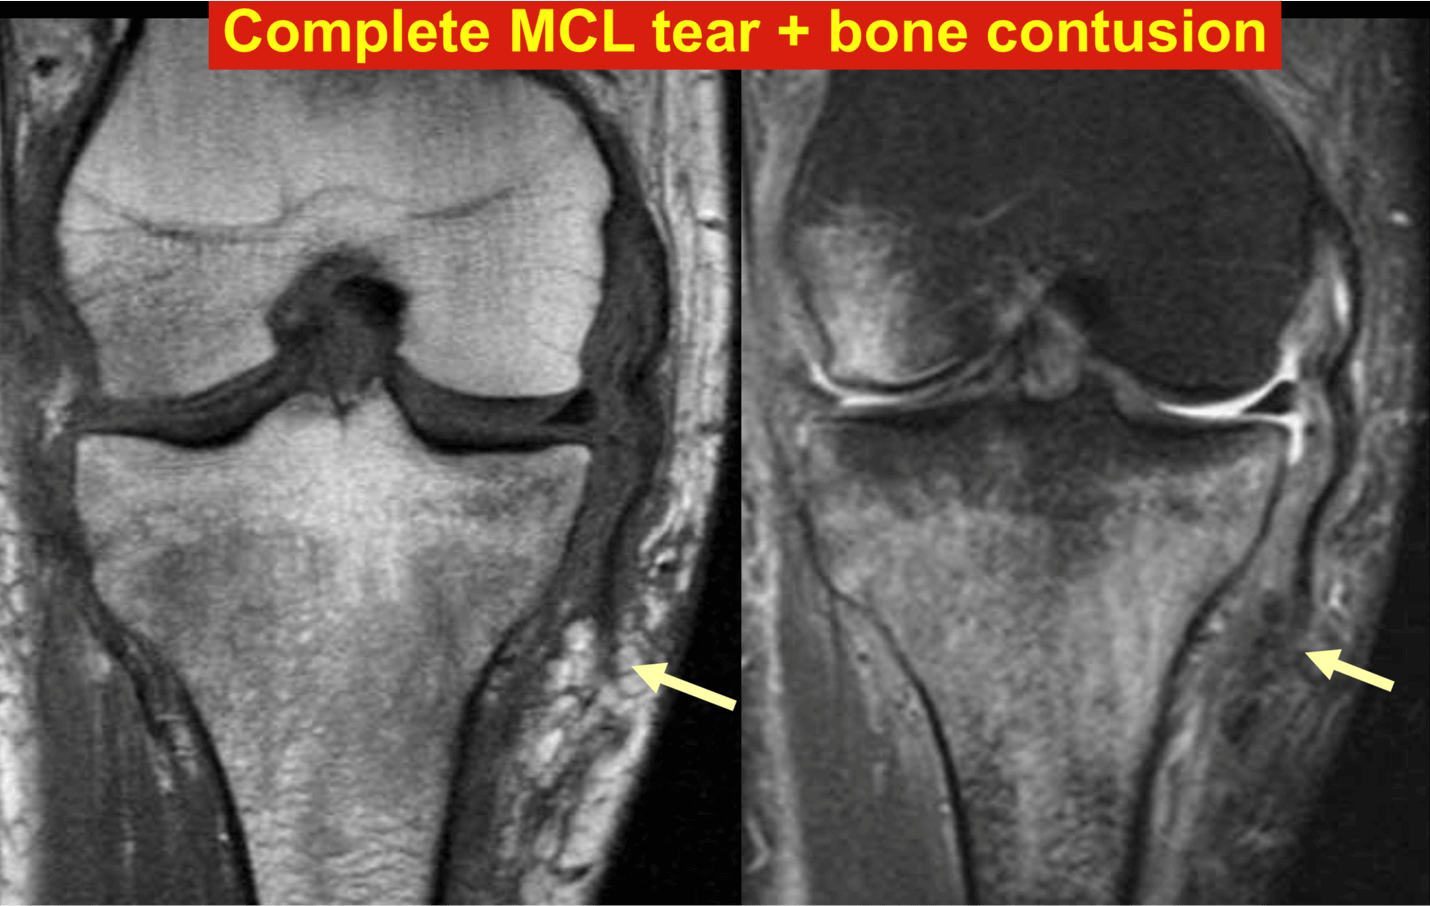 Complete MCL tear and bone contusion